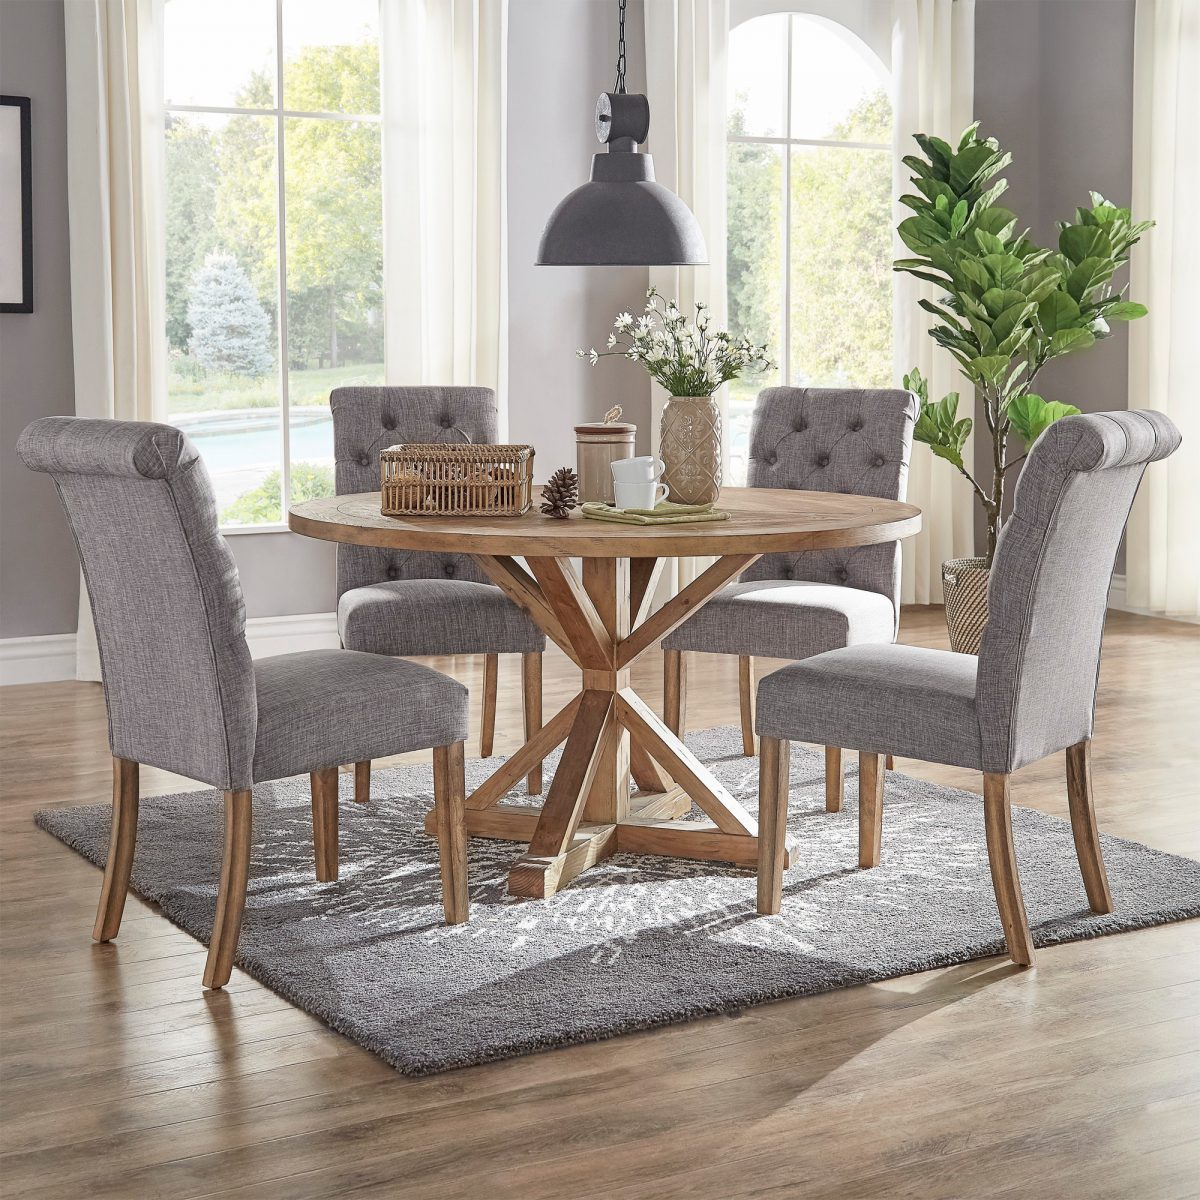 Benchwright Rustic X Base 48 Inch Round Dining Table Set